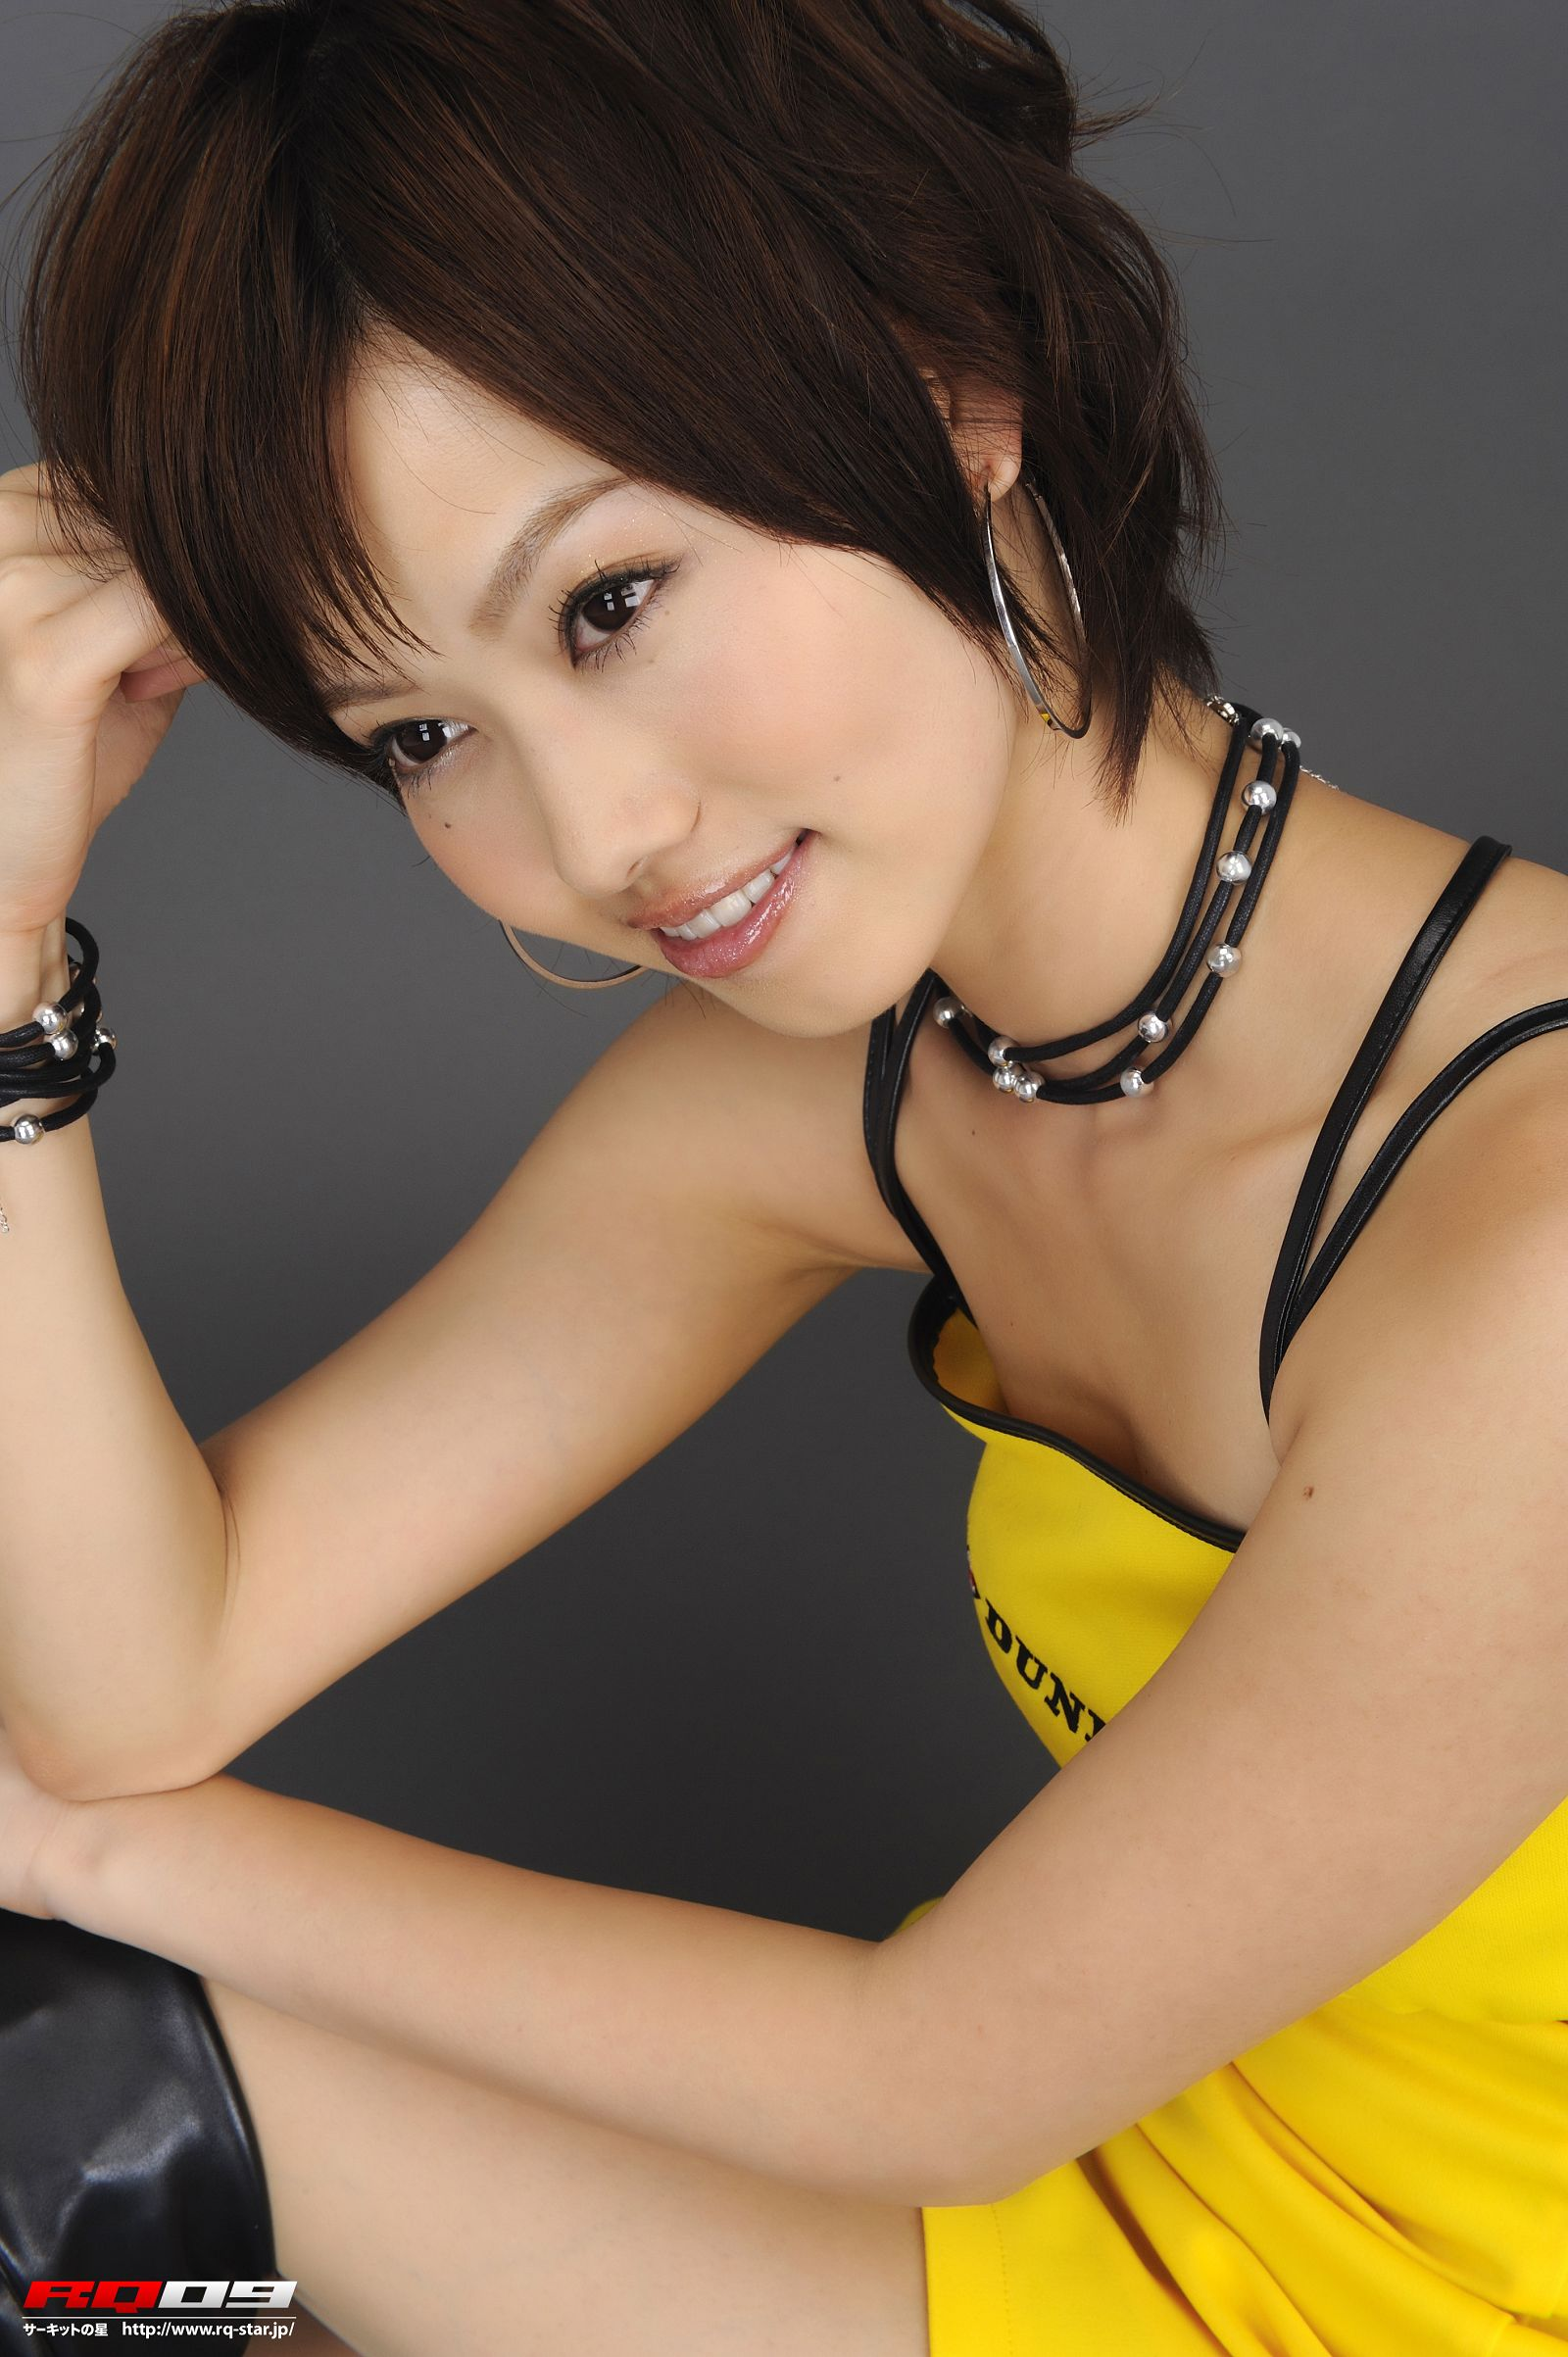 [RQ STAR美女] NO.0170 Emiri Fujimura 藤村えみり Race Queen[120P] RQ STAR 第4张